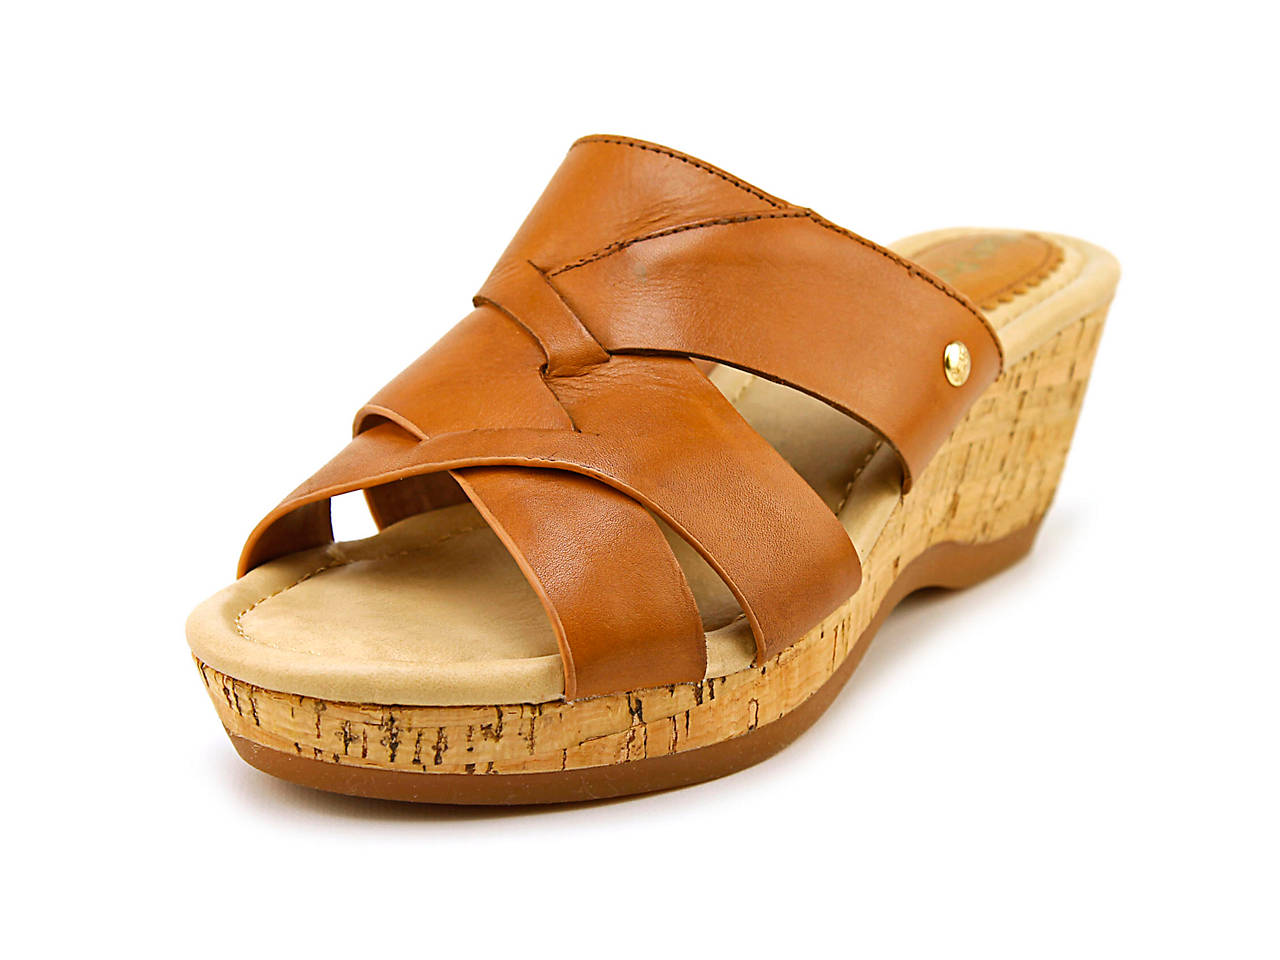 ce0e25720264 Hush Puppies Janae Farris Wedge Sandal - Final Sale Women s Shoes